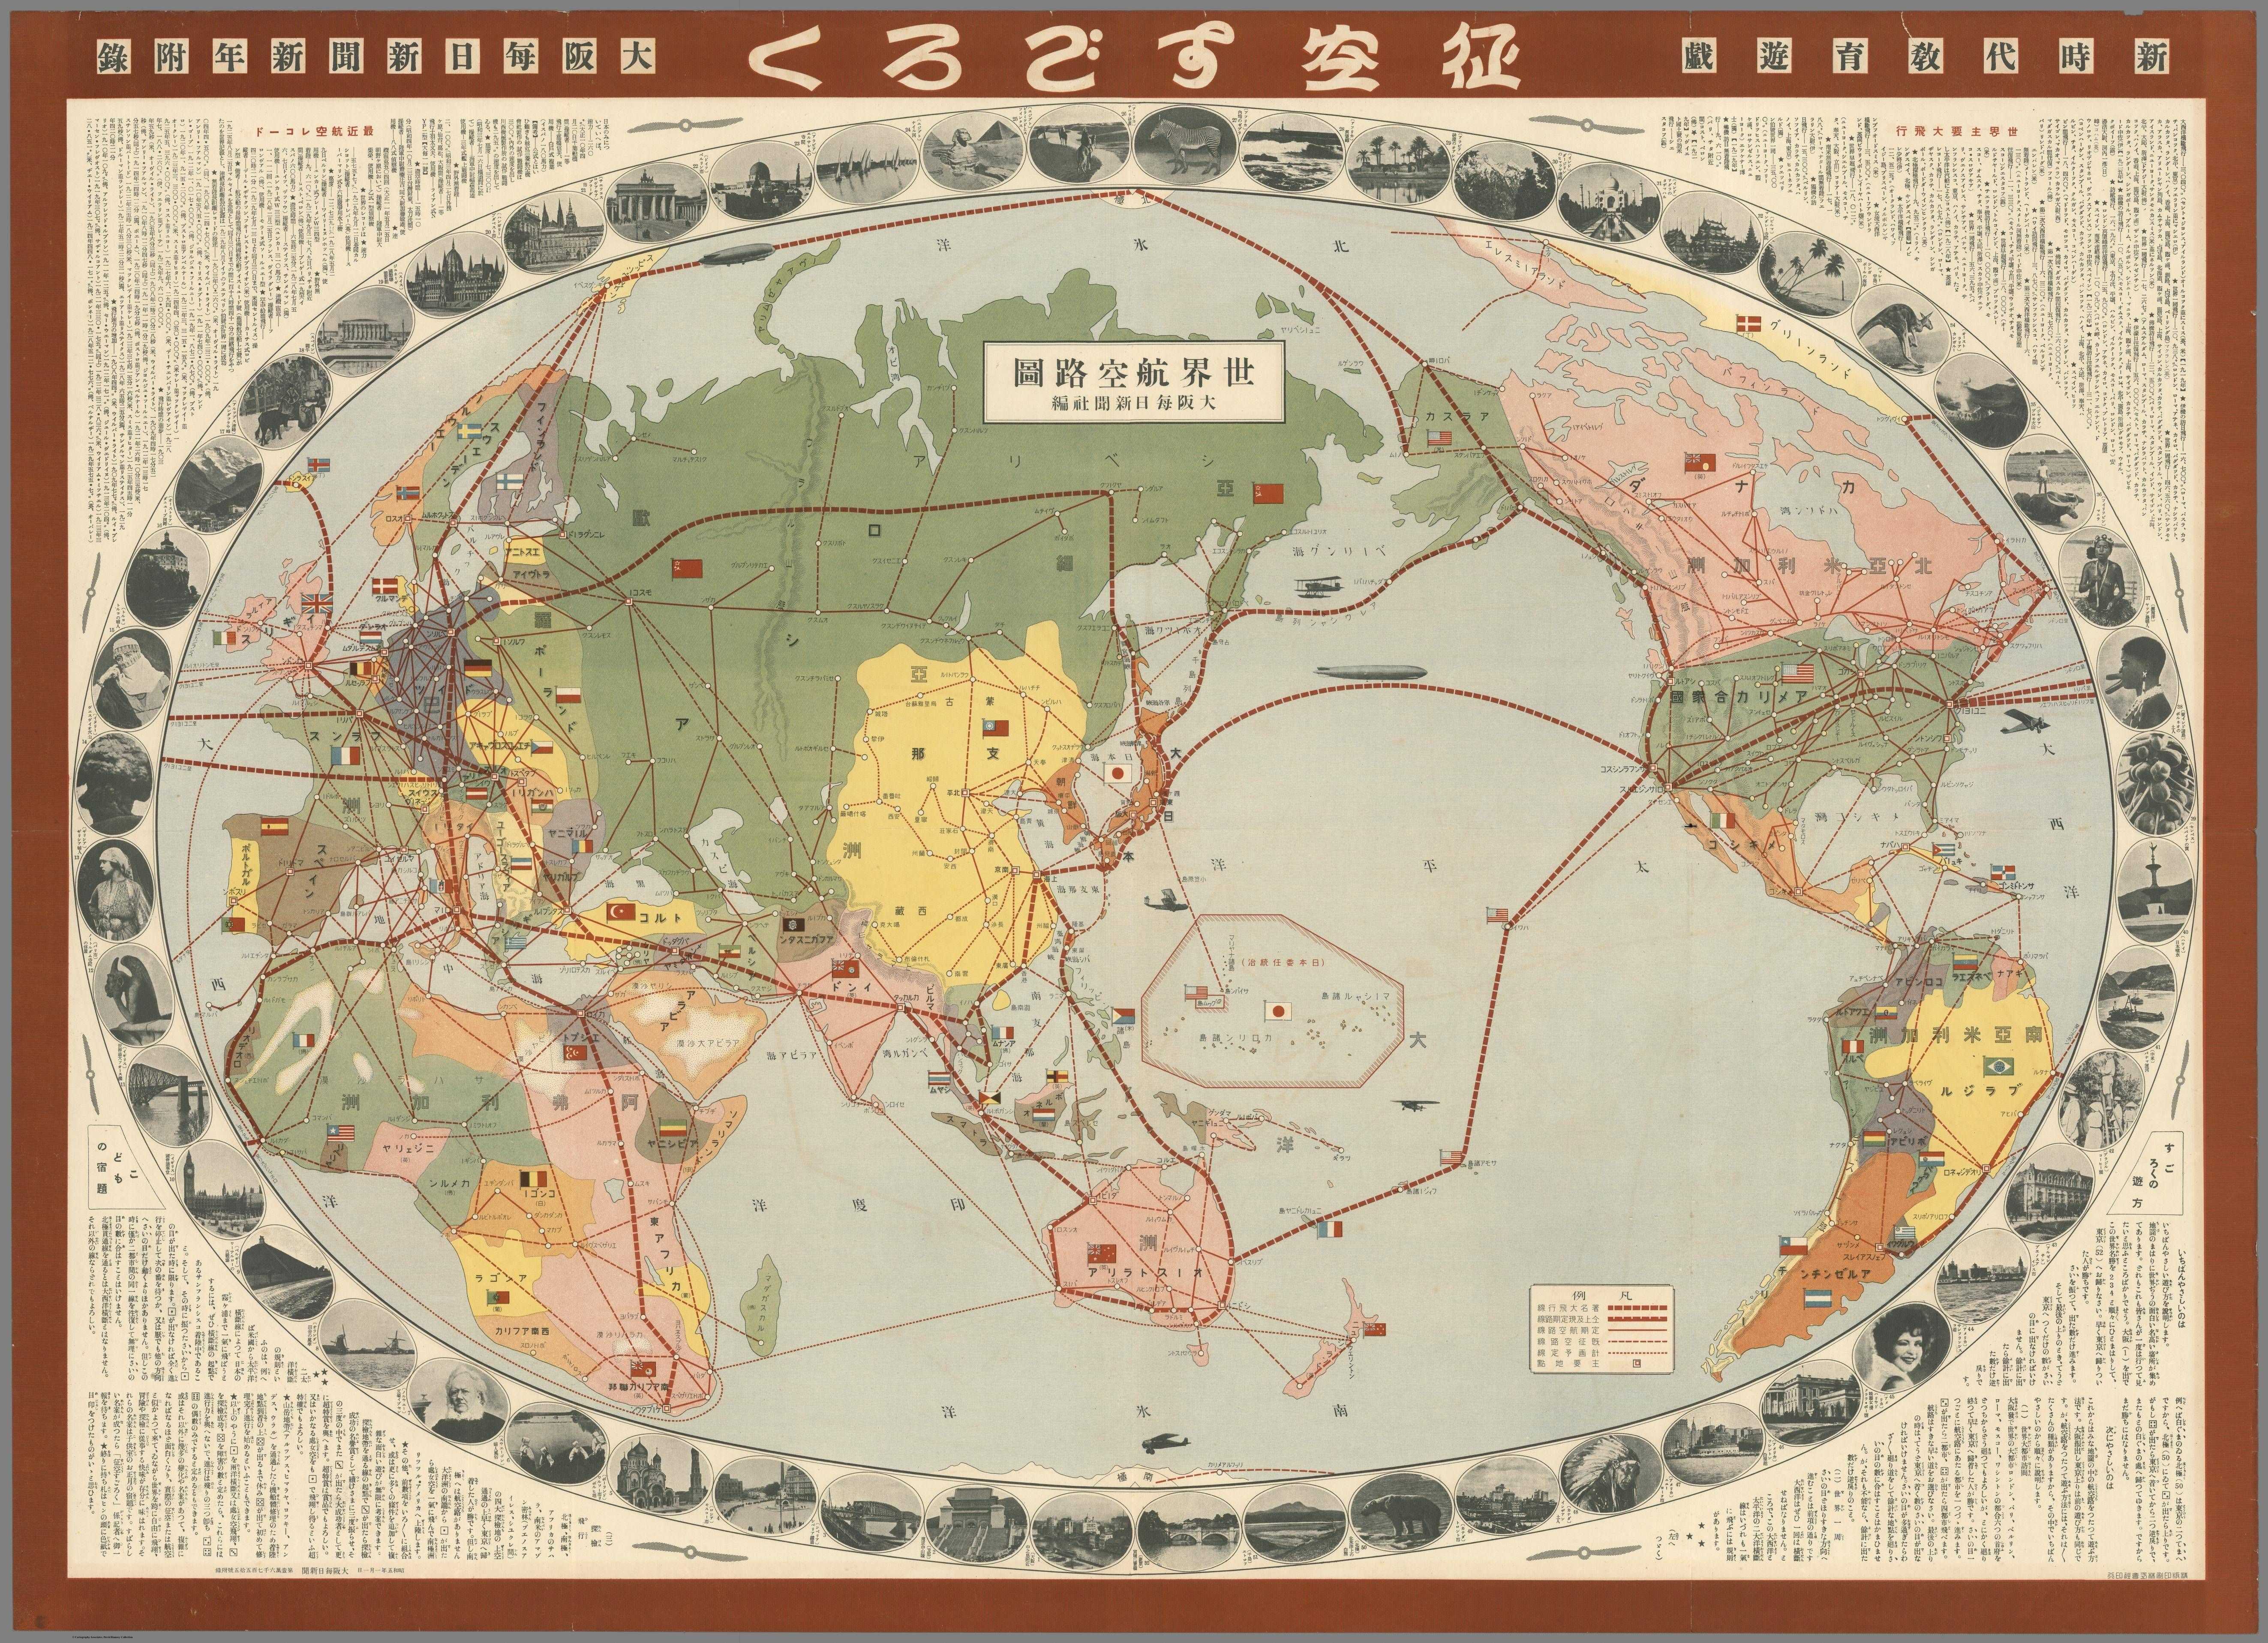 Japanese world map from the board game conquering the skies made japanese world map from the board game conquering the skies made in 1930 gumiabroncs Images